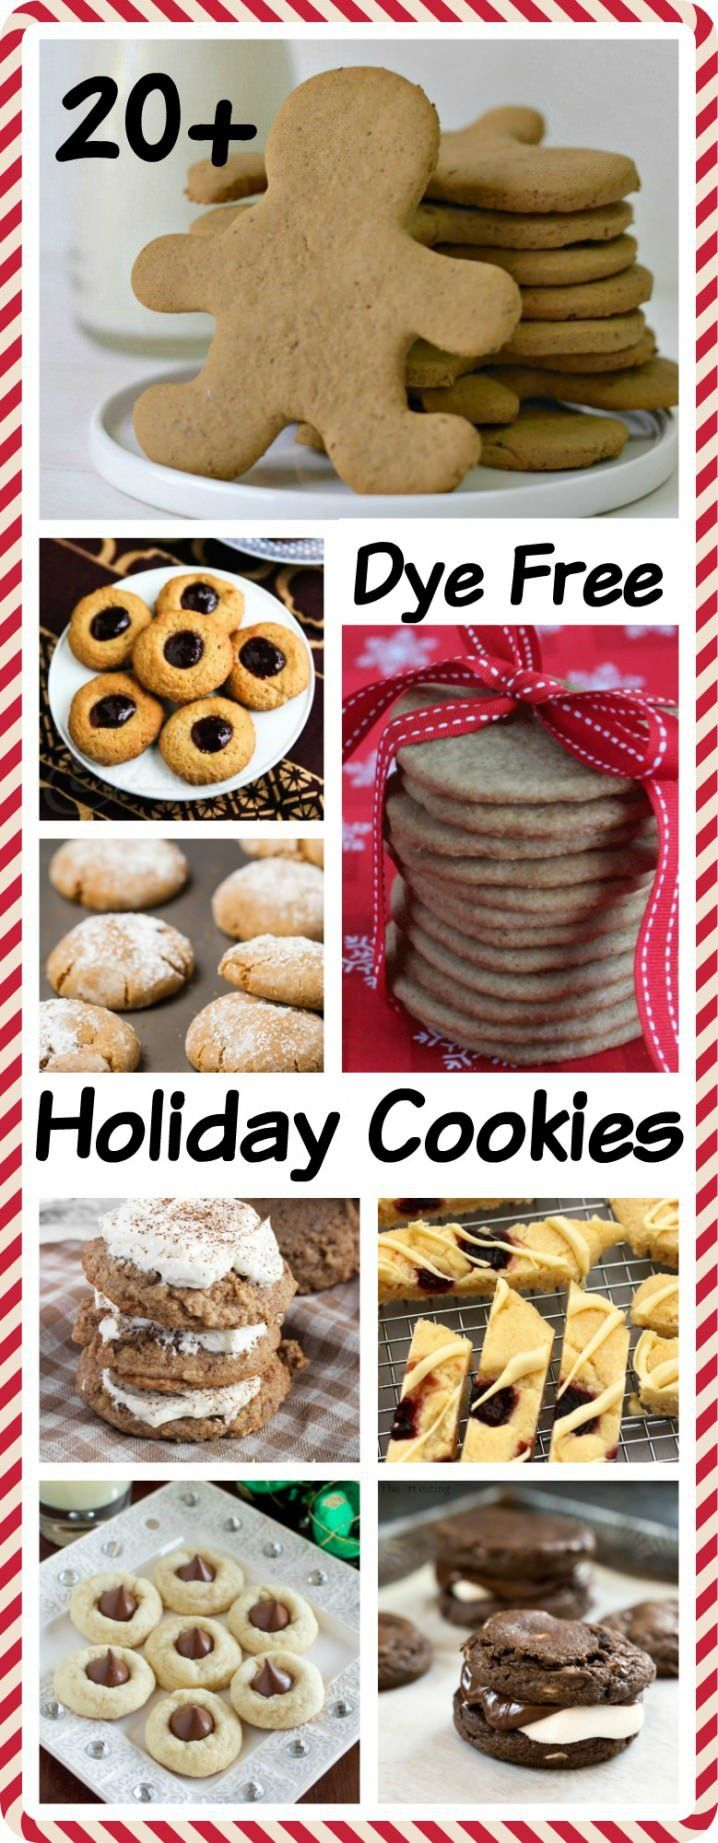 23 Dye Free Holiday Cookie Recipes - Now even kids and adults with food allergies can enjoy Christmas cookies!